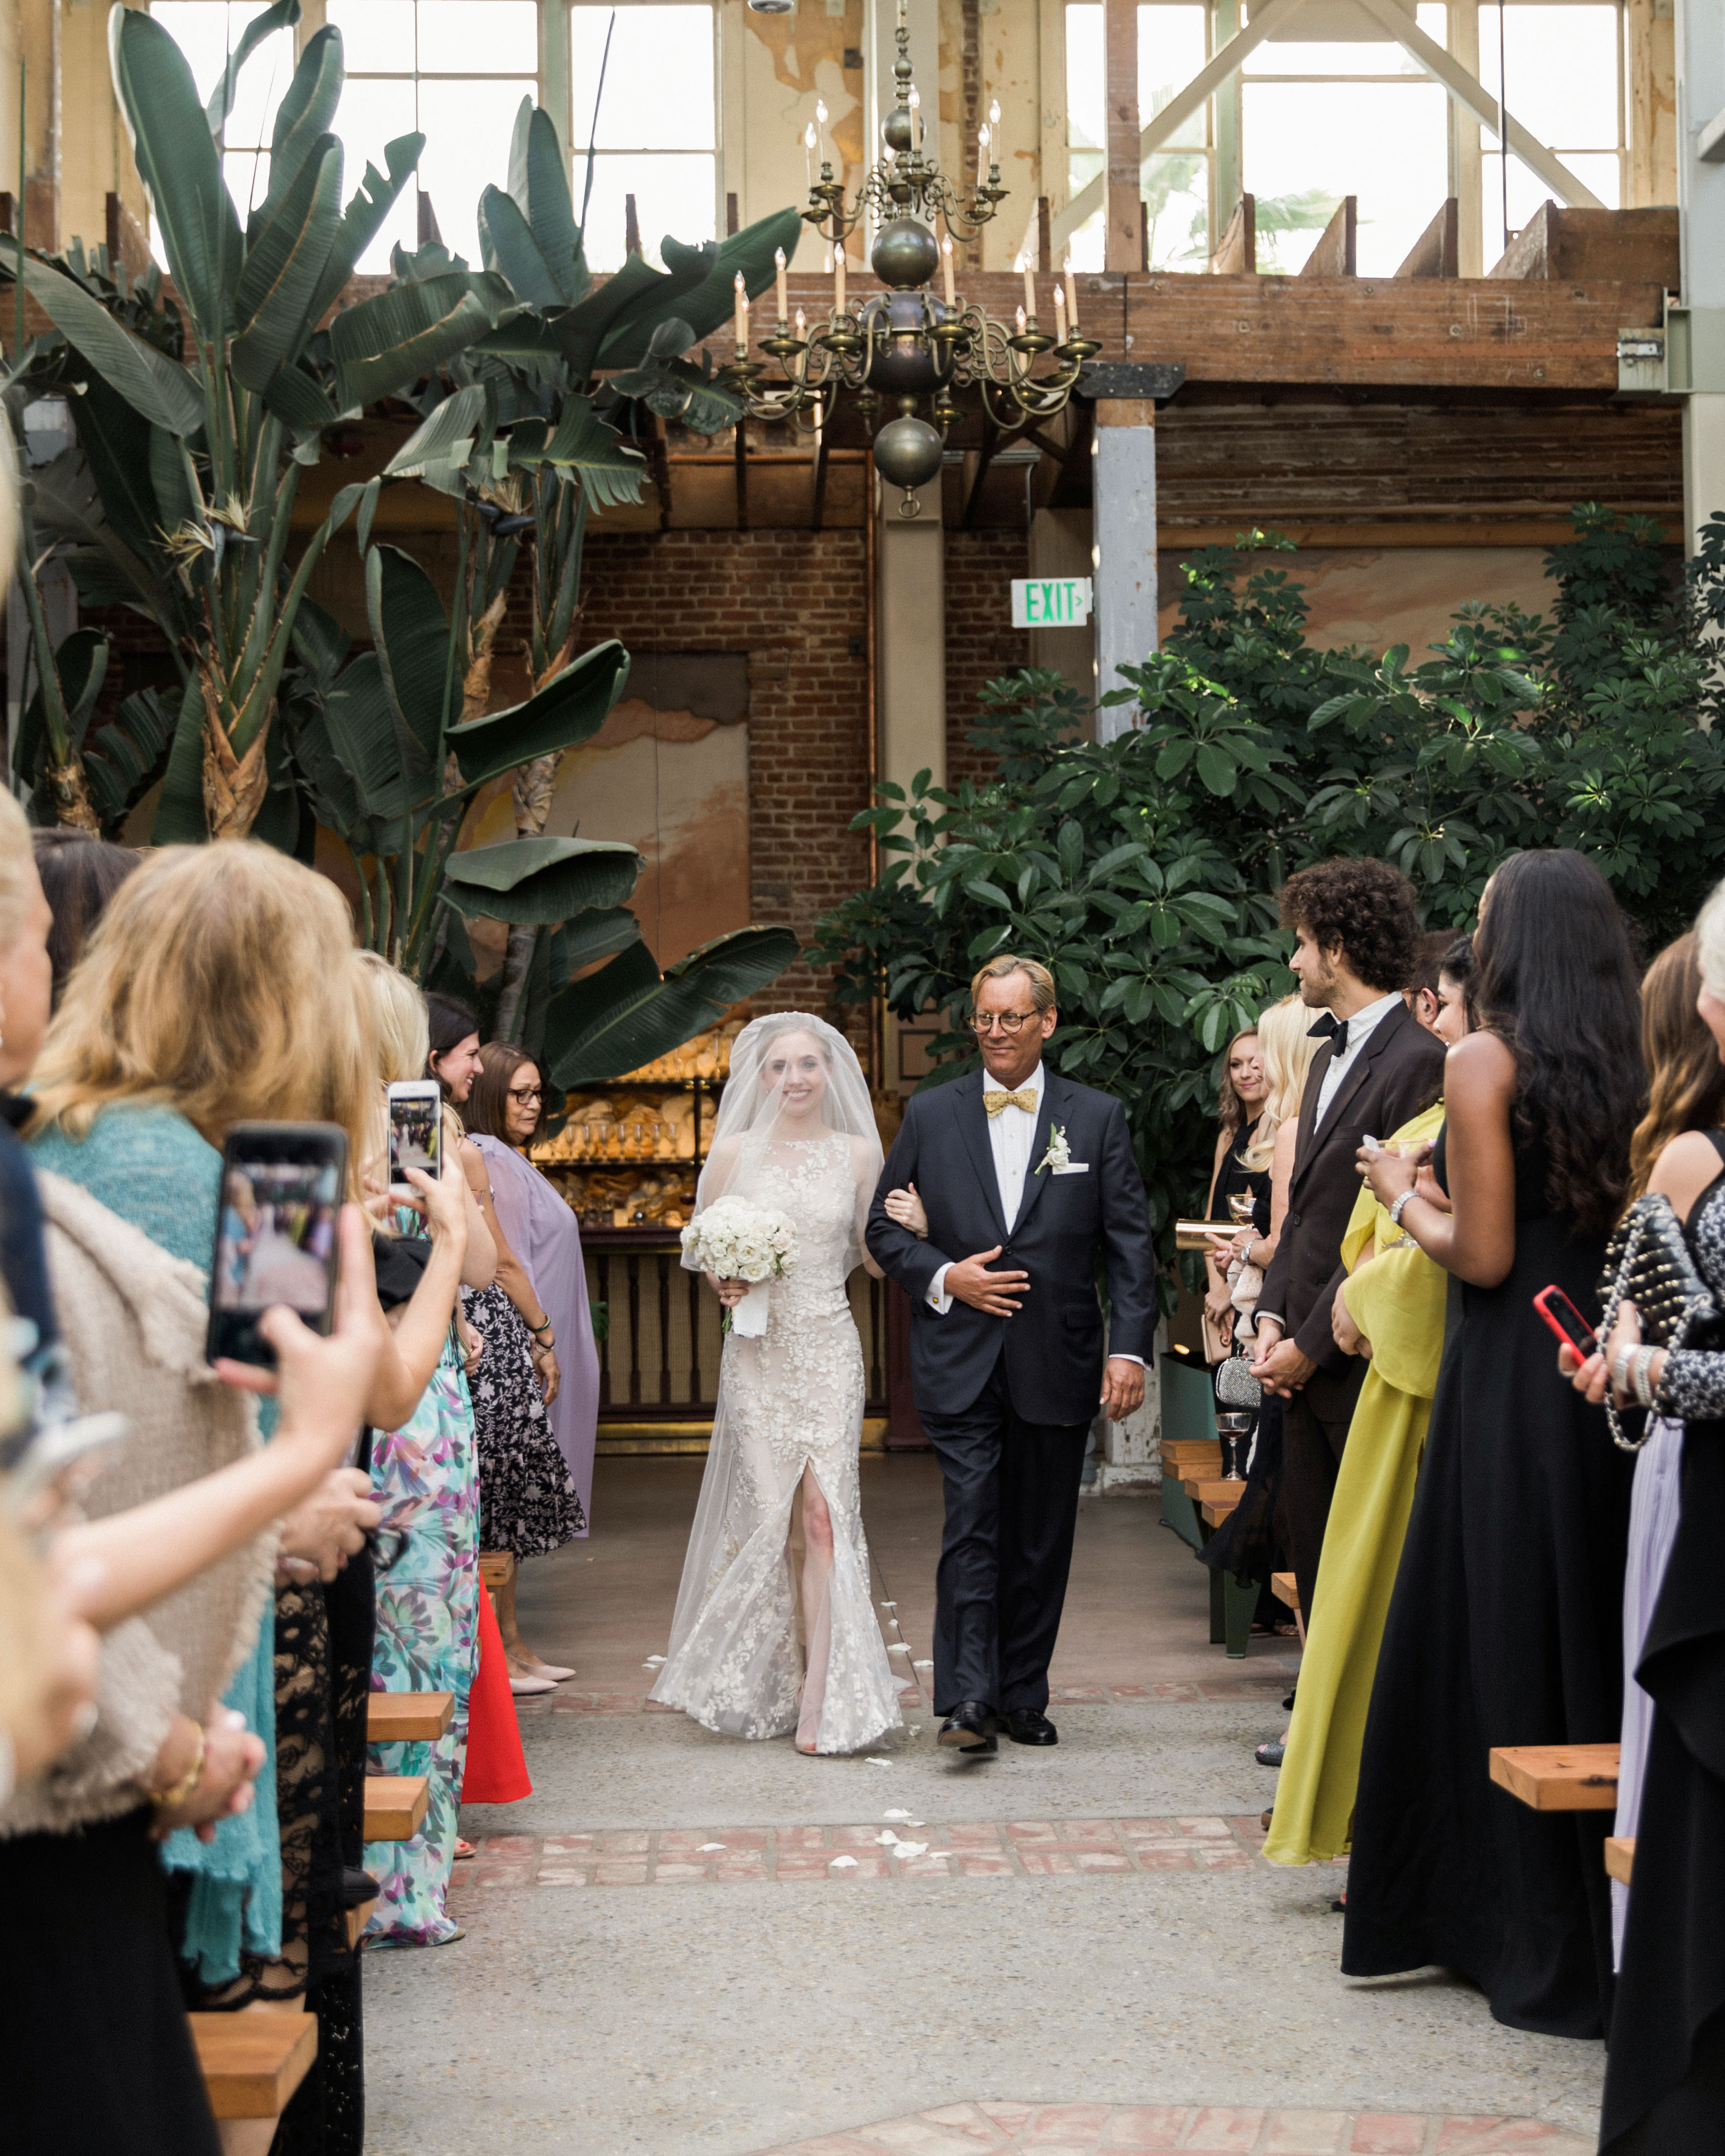 wedding processional bride father guests watching with phones